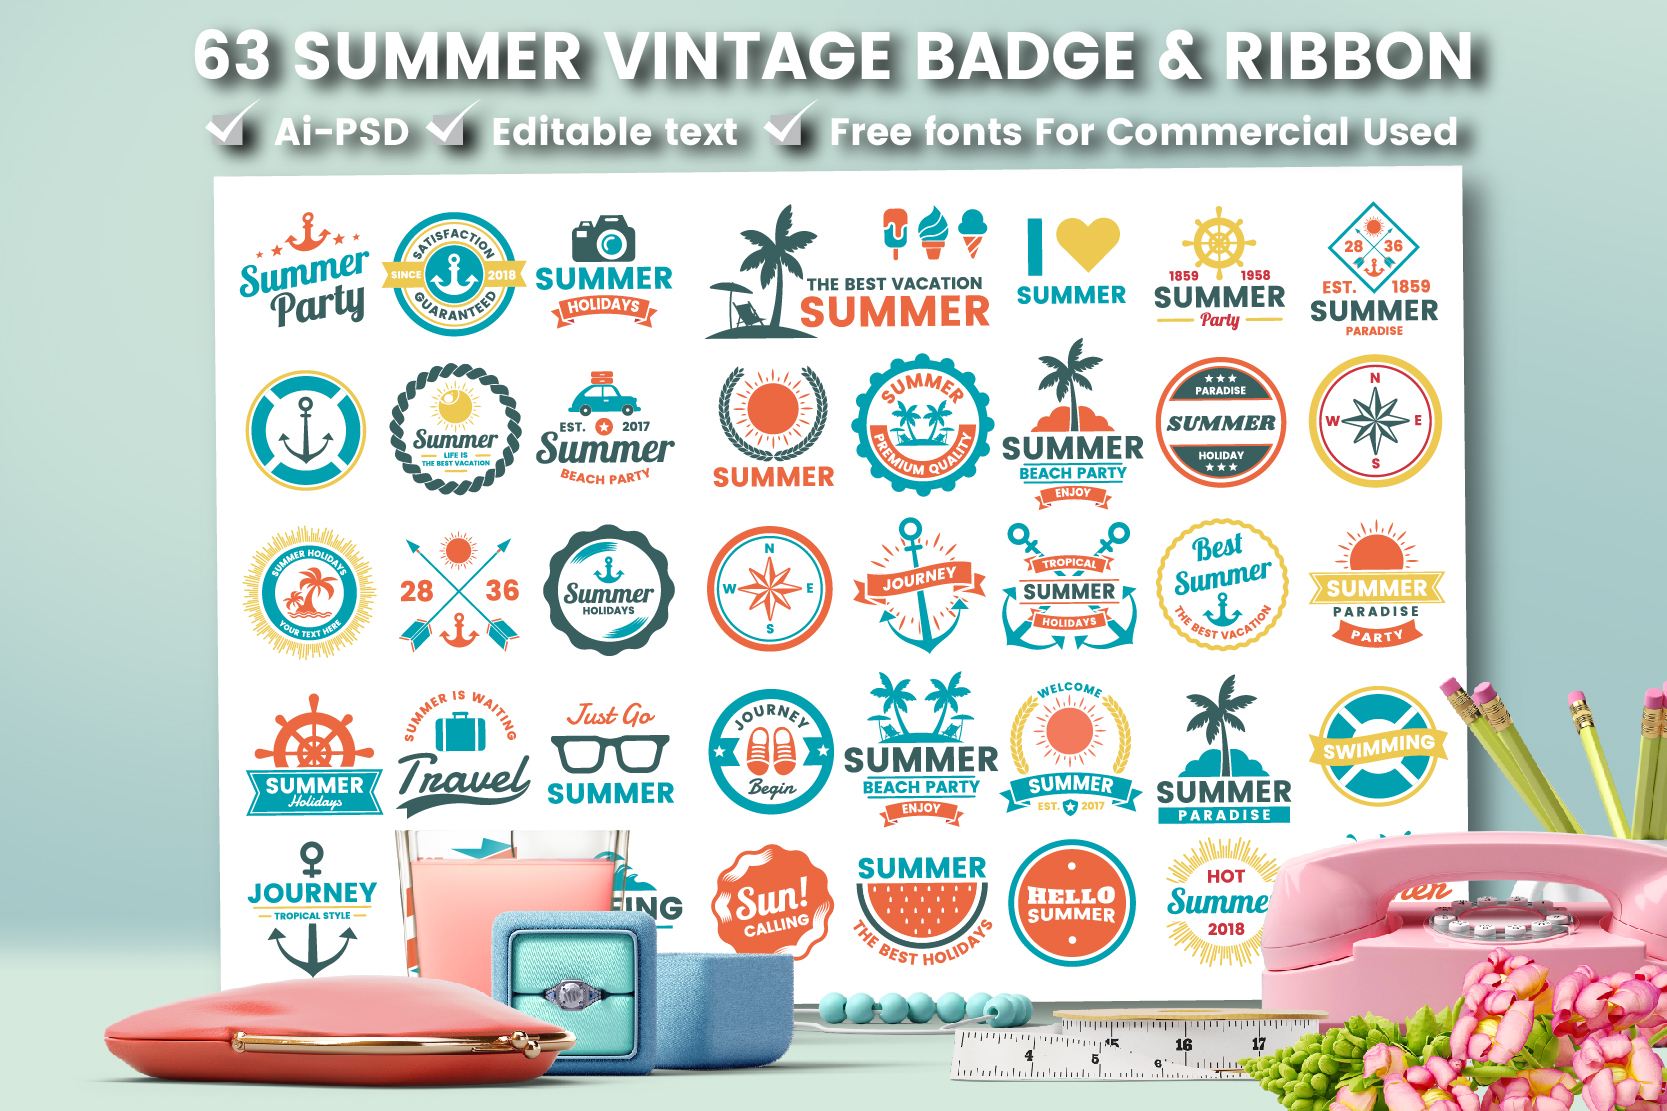 63 SUMMER VINTAGE BADGE & RIBBON example image 2